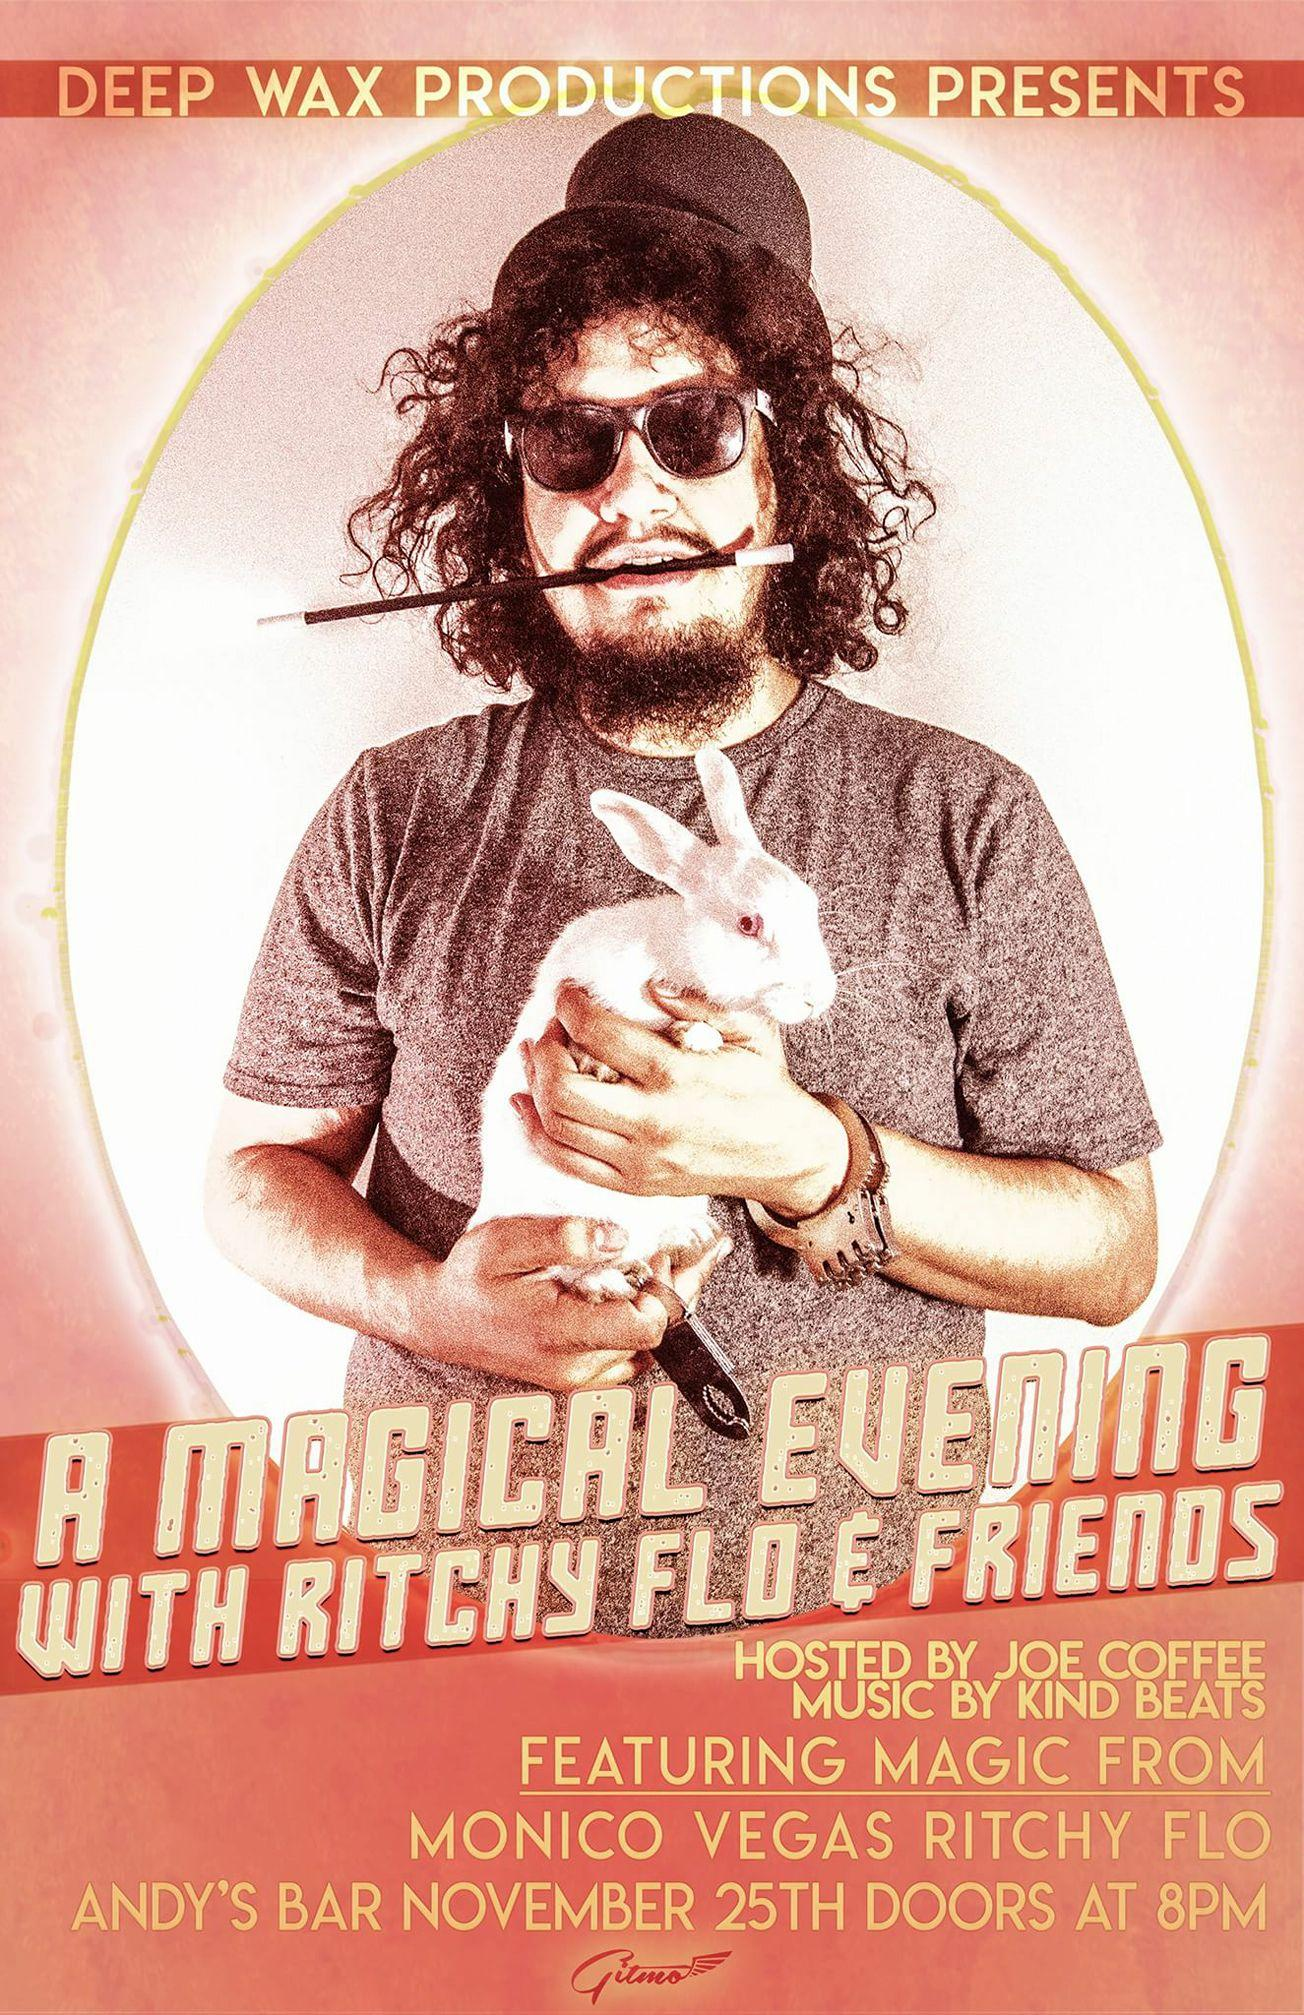 A Magical Evening with Ritchy Flo and Friends